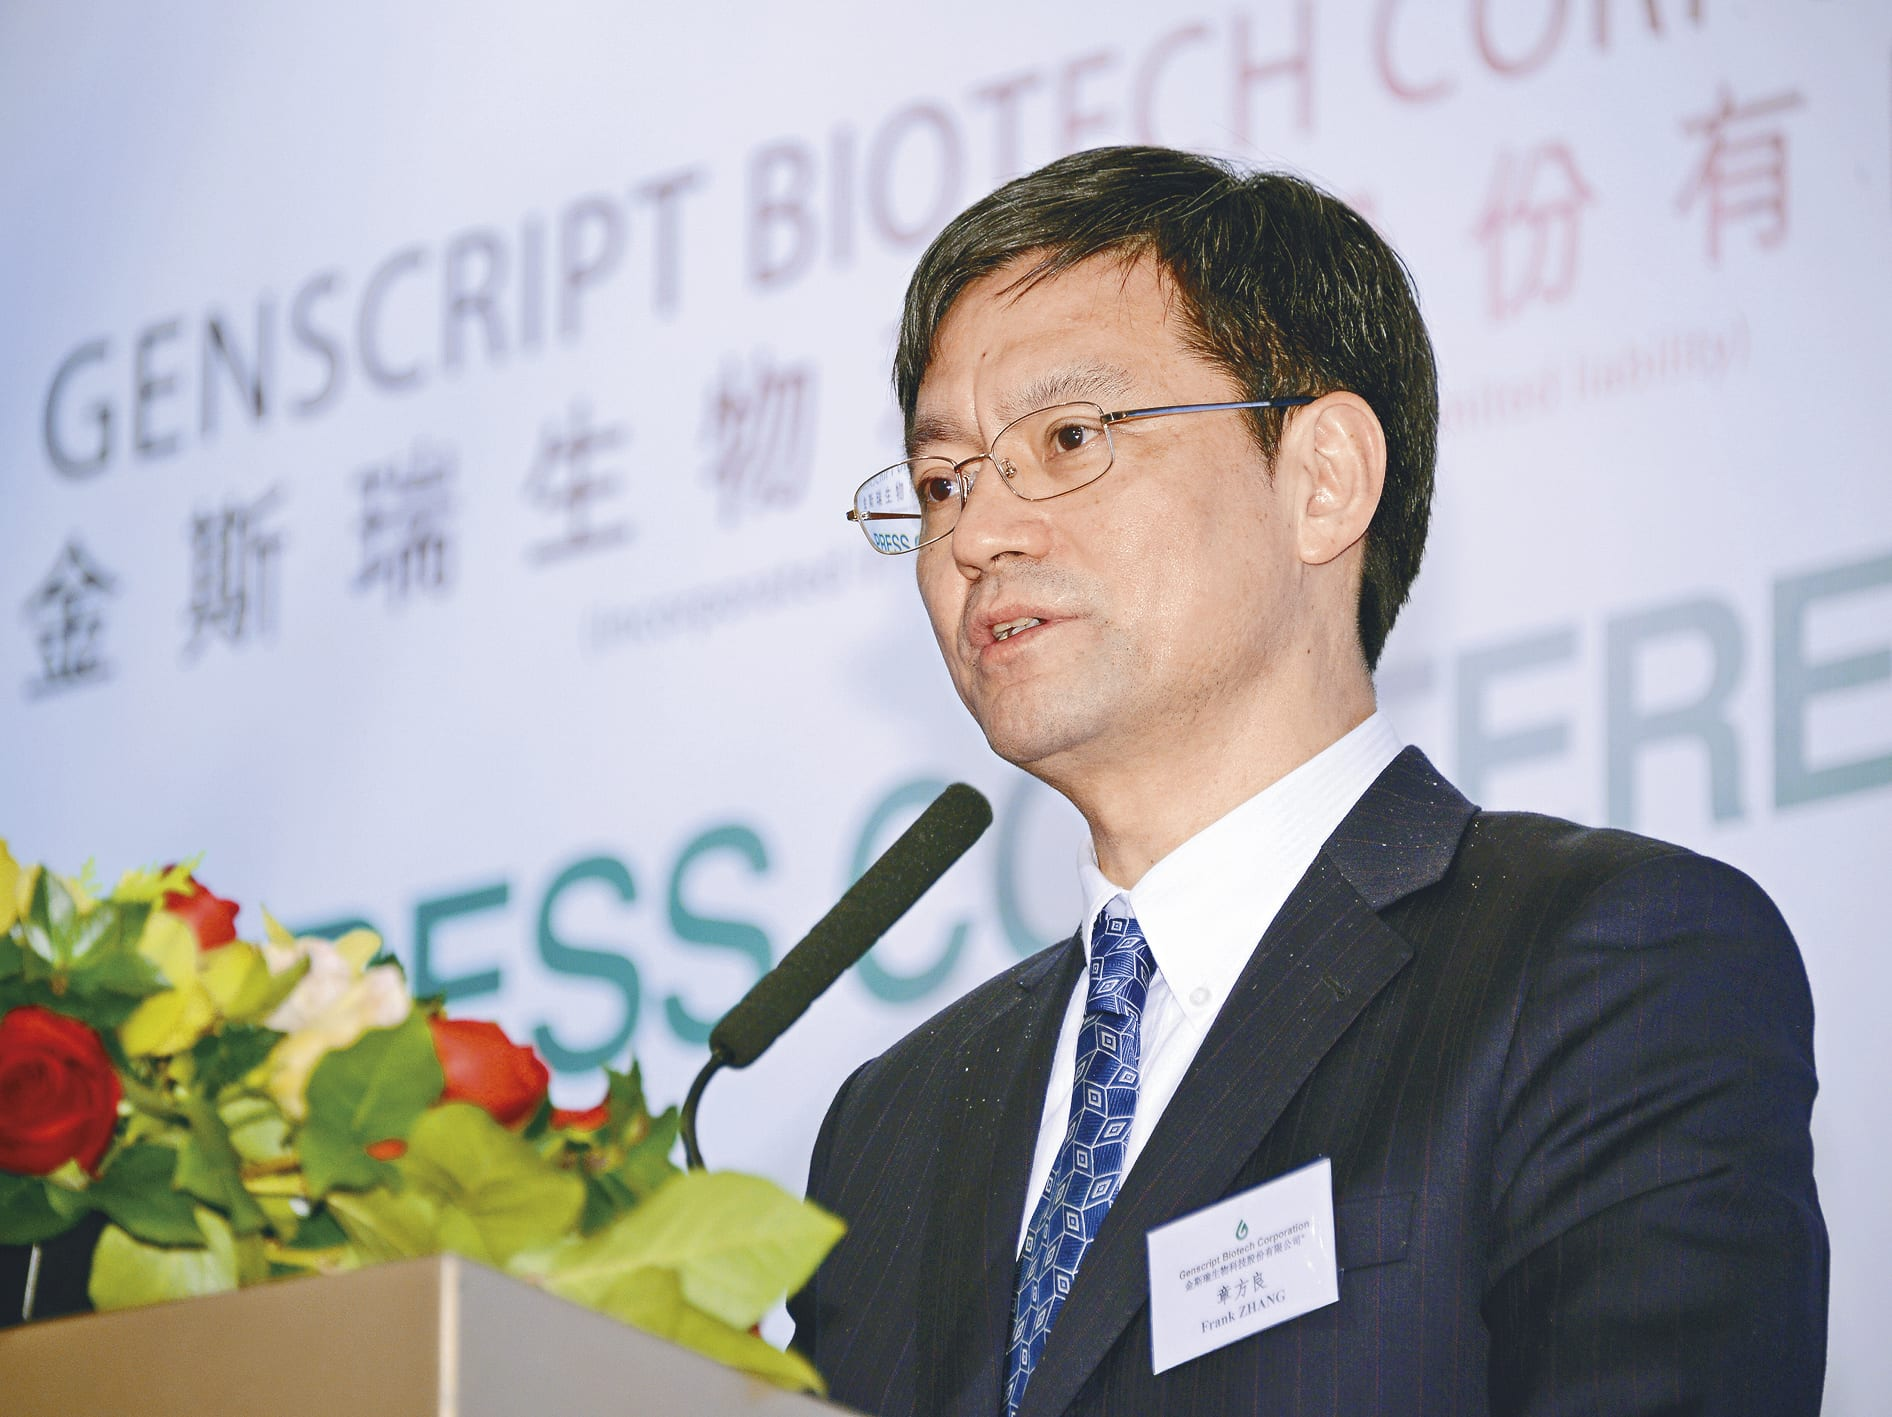 The big money: Poised to make drug R&D history, a China biotech unveils unicorn racing ambitions in a bid to raise $350M-plus on Nasdaq